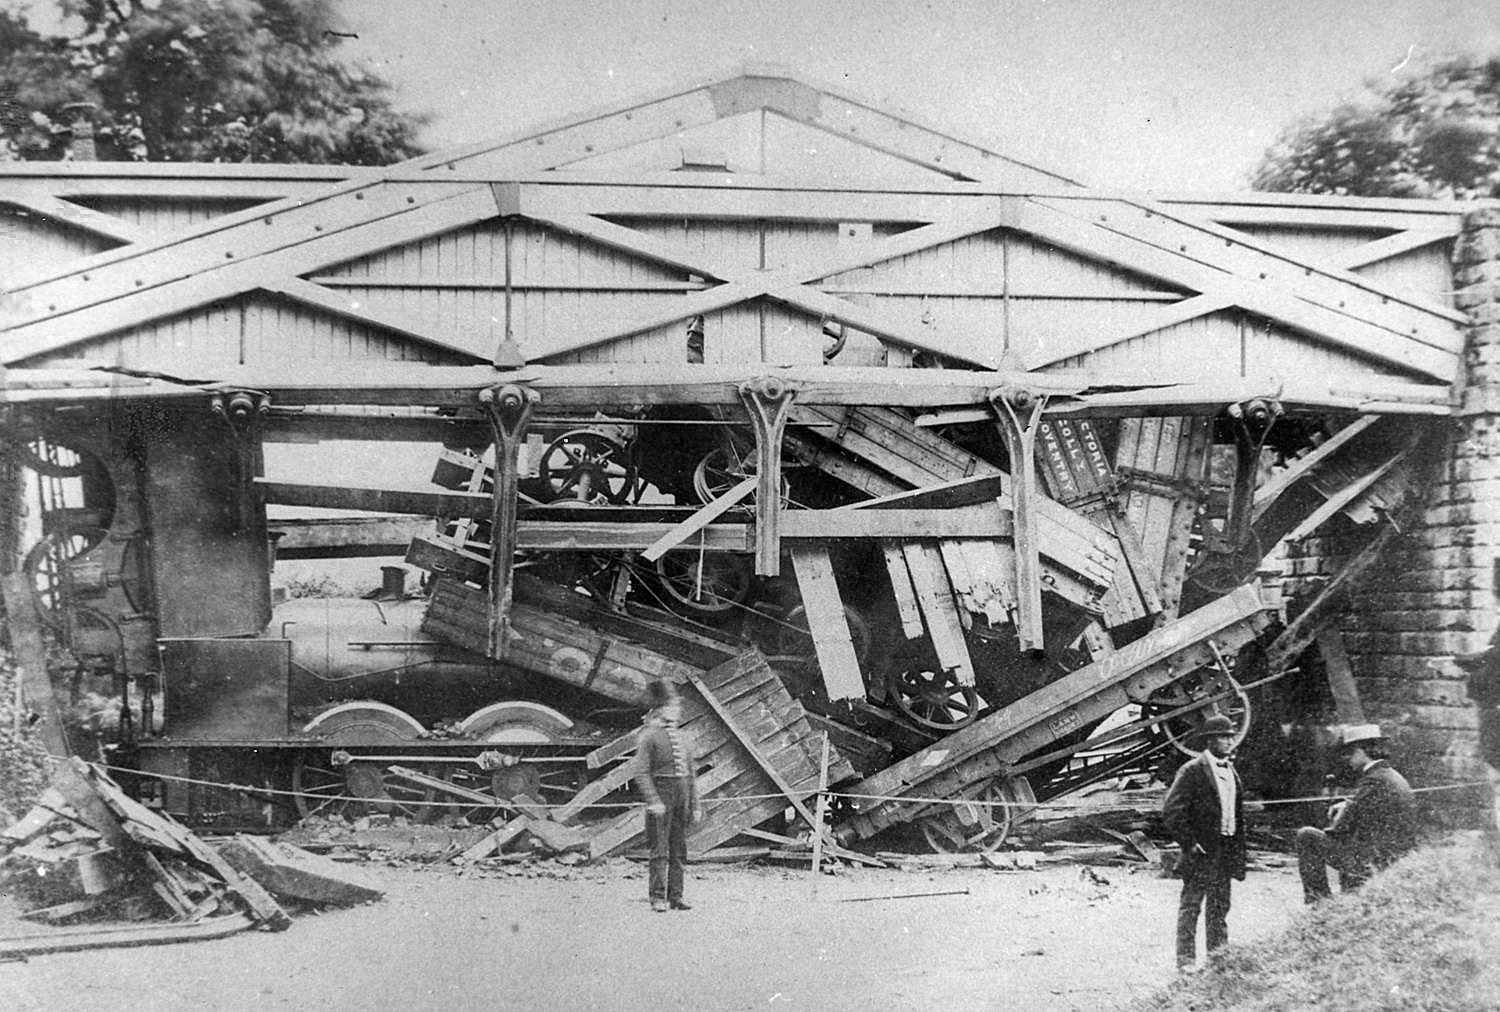 Aftermath of the Wootton bridge collapse caused by cracked